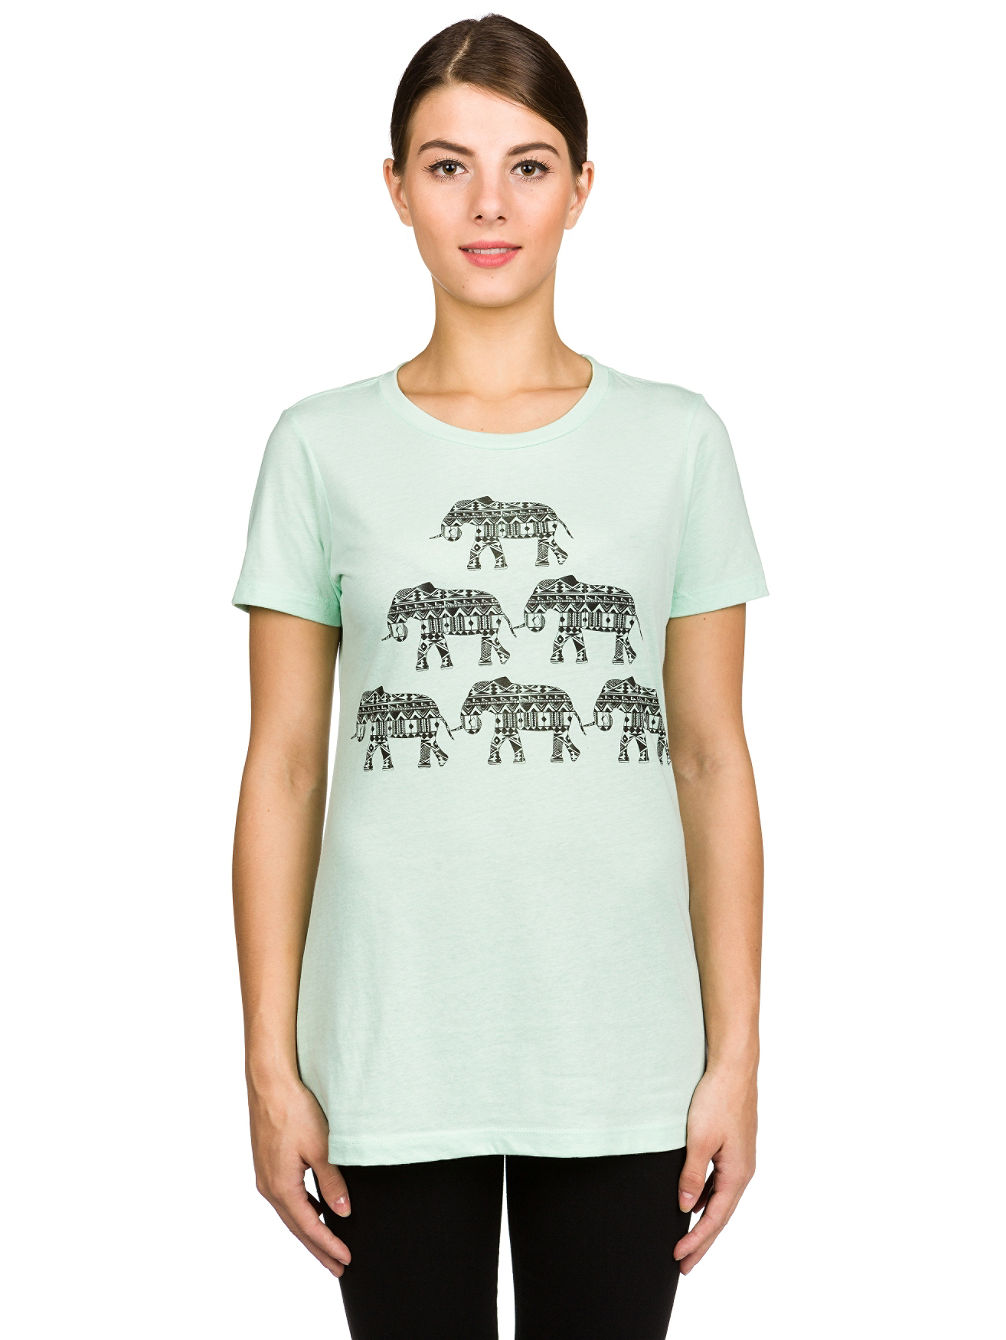 Elephant Pyramid Camiseta